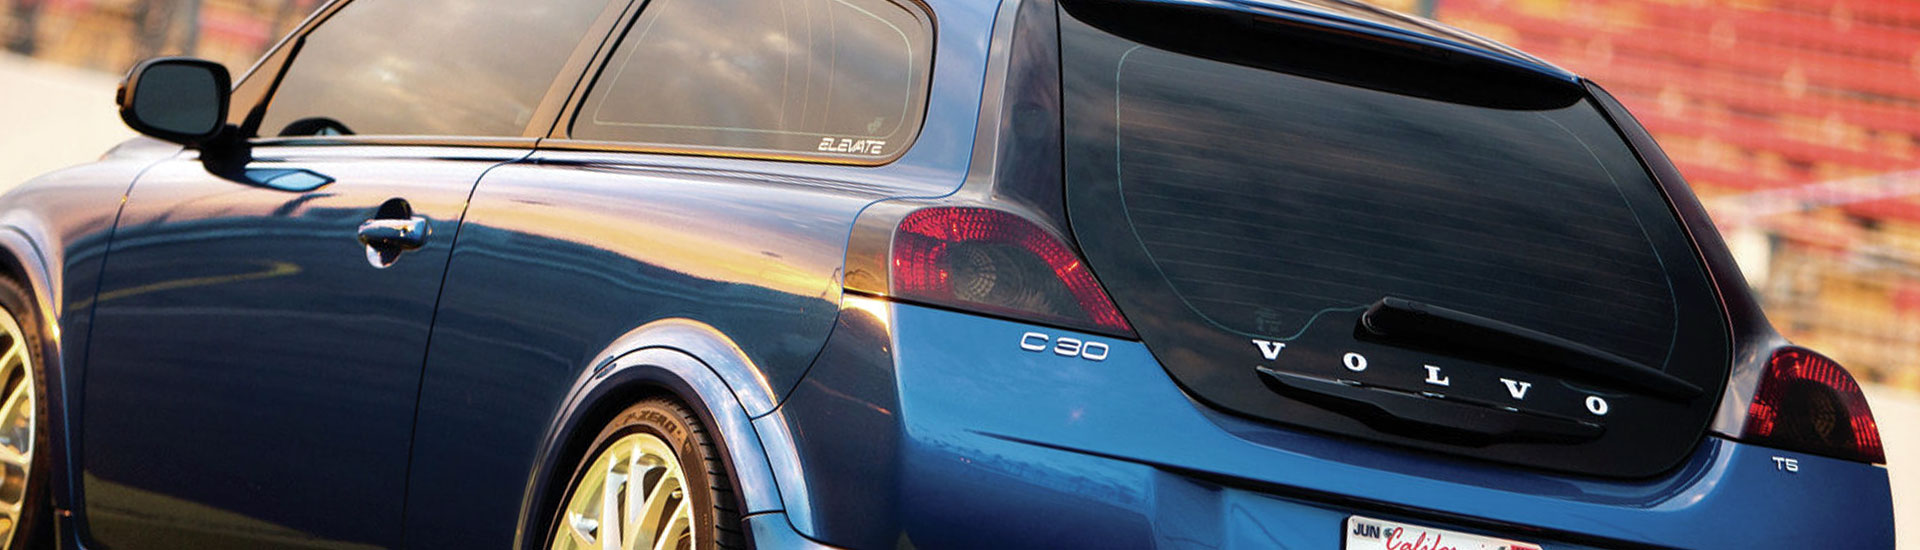 Volvo Tail Light Tint Covers